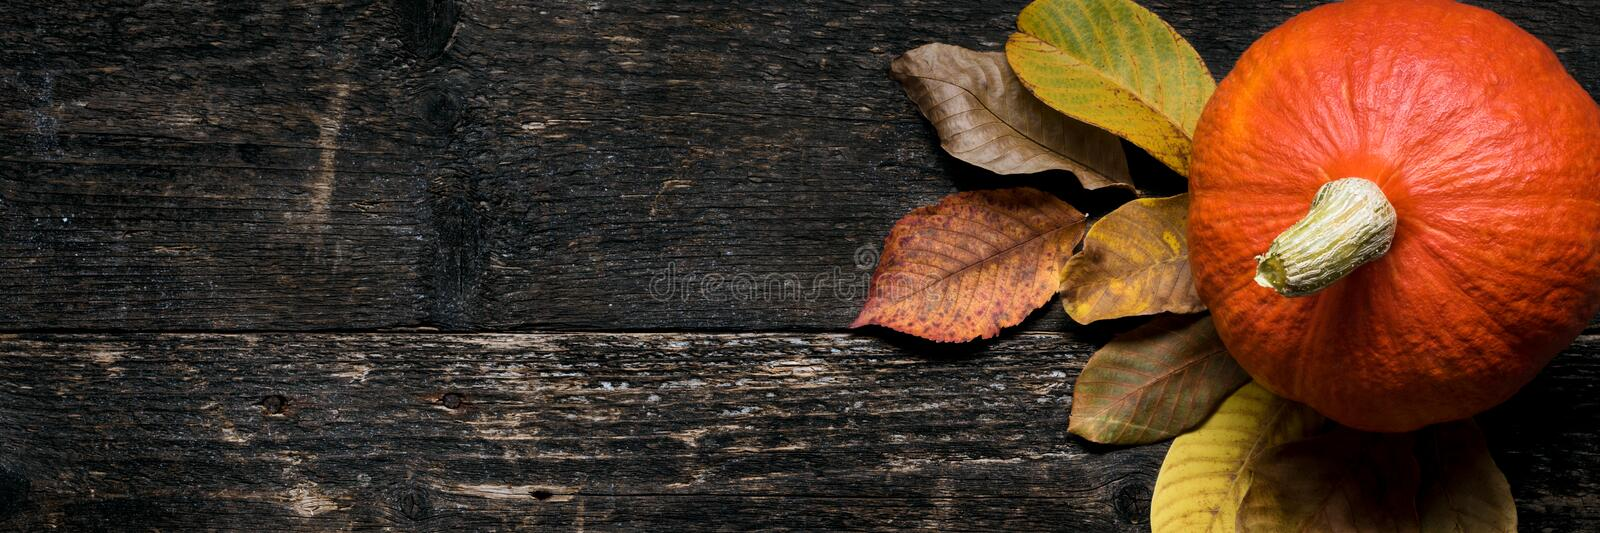 Autumn Harvest and Holiday still life. Happy Thanksgiving Banner. Two pumpkins and fallen leaves on dark wooden background. Autumn vegetables and seasonal stock images